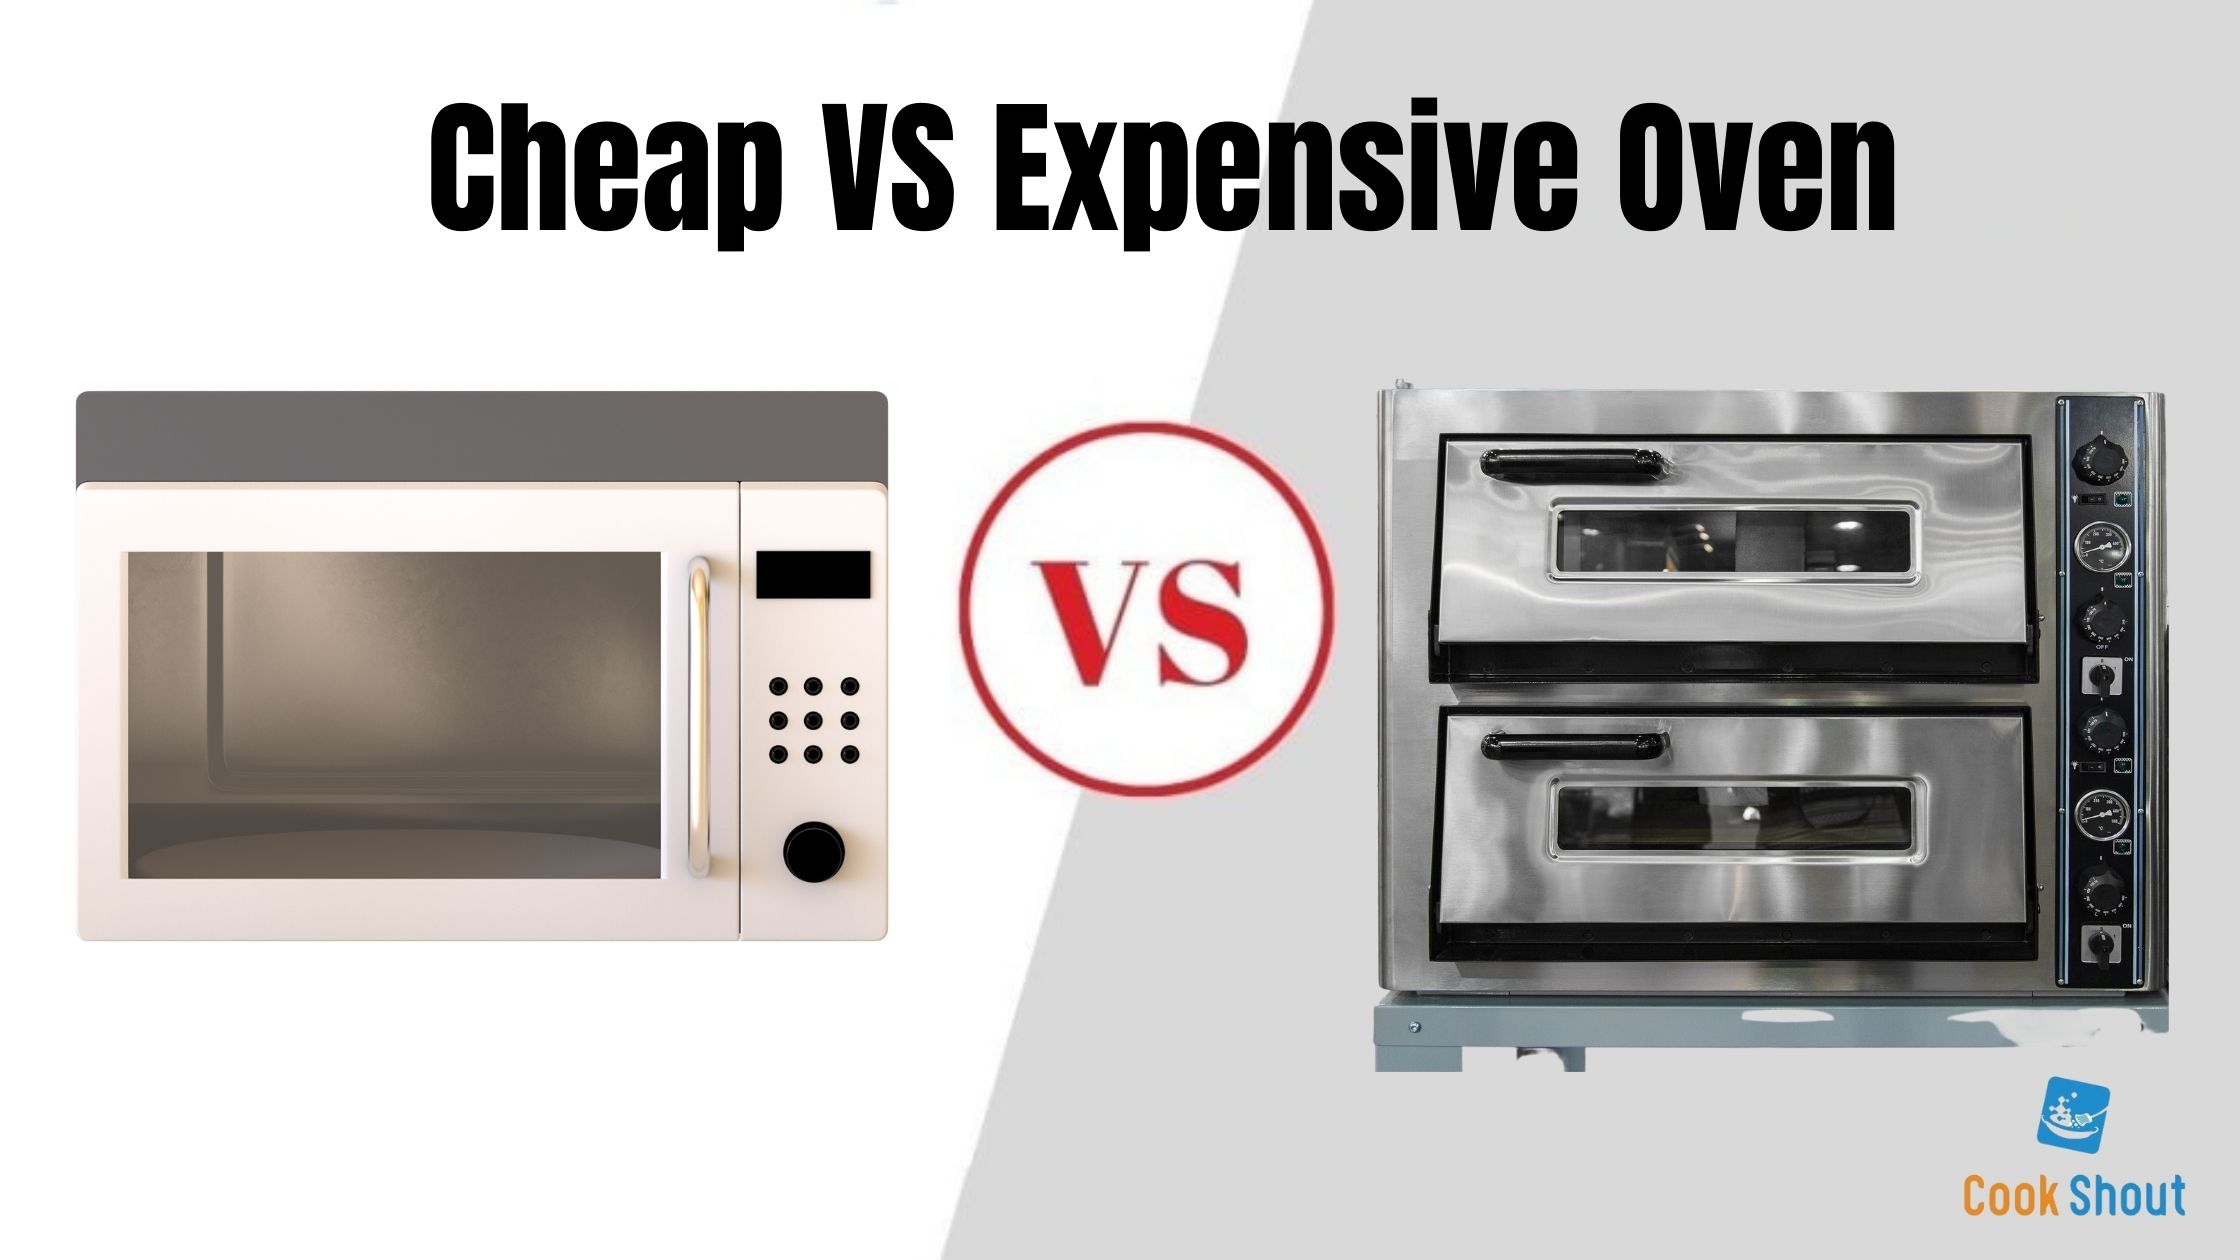 Cheap vs Expensive Oven